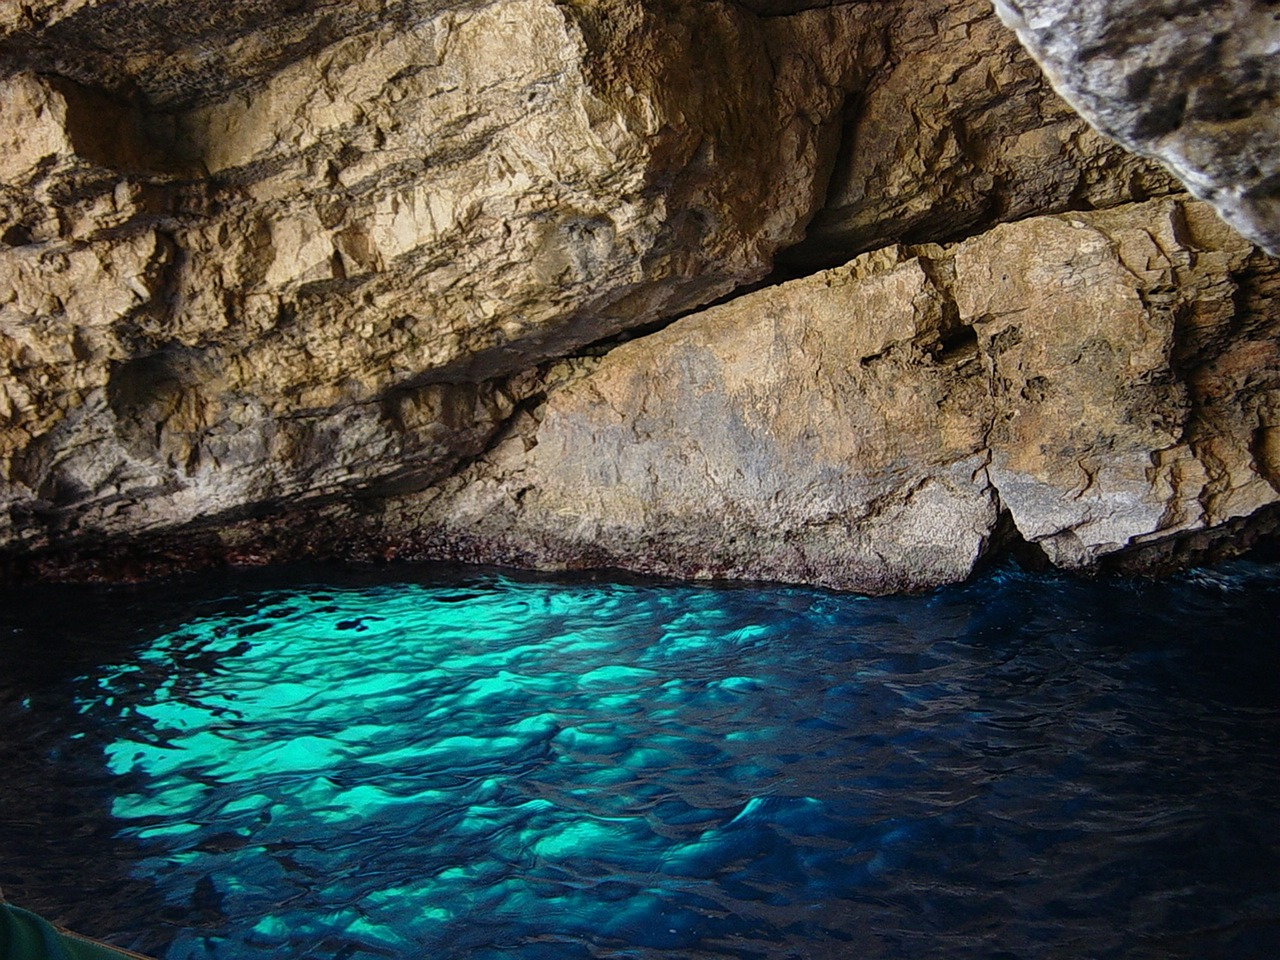 blue-grotto-590335_1280 a